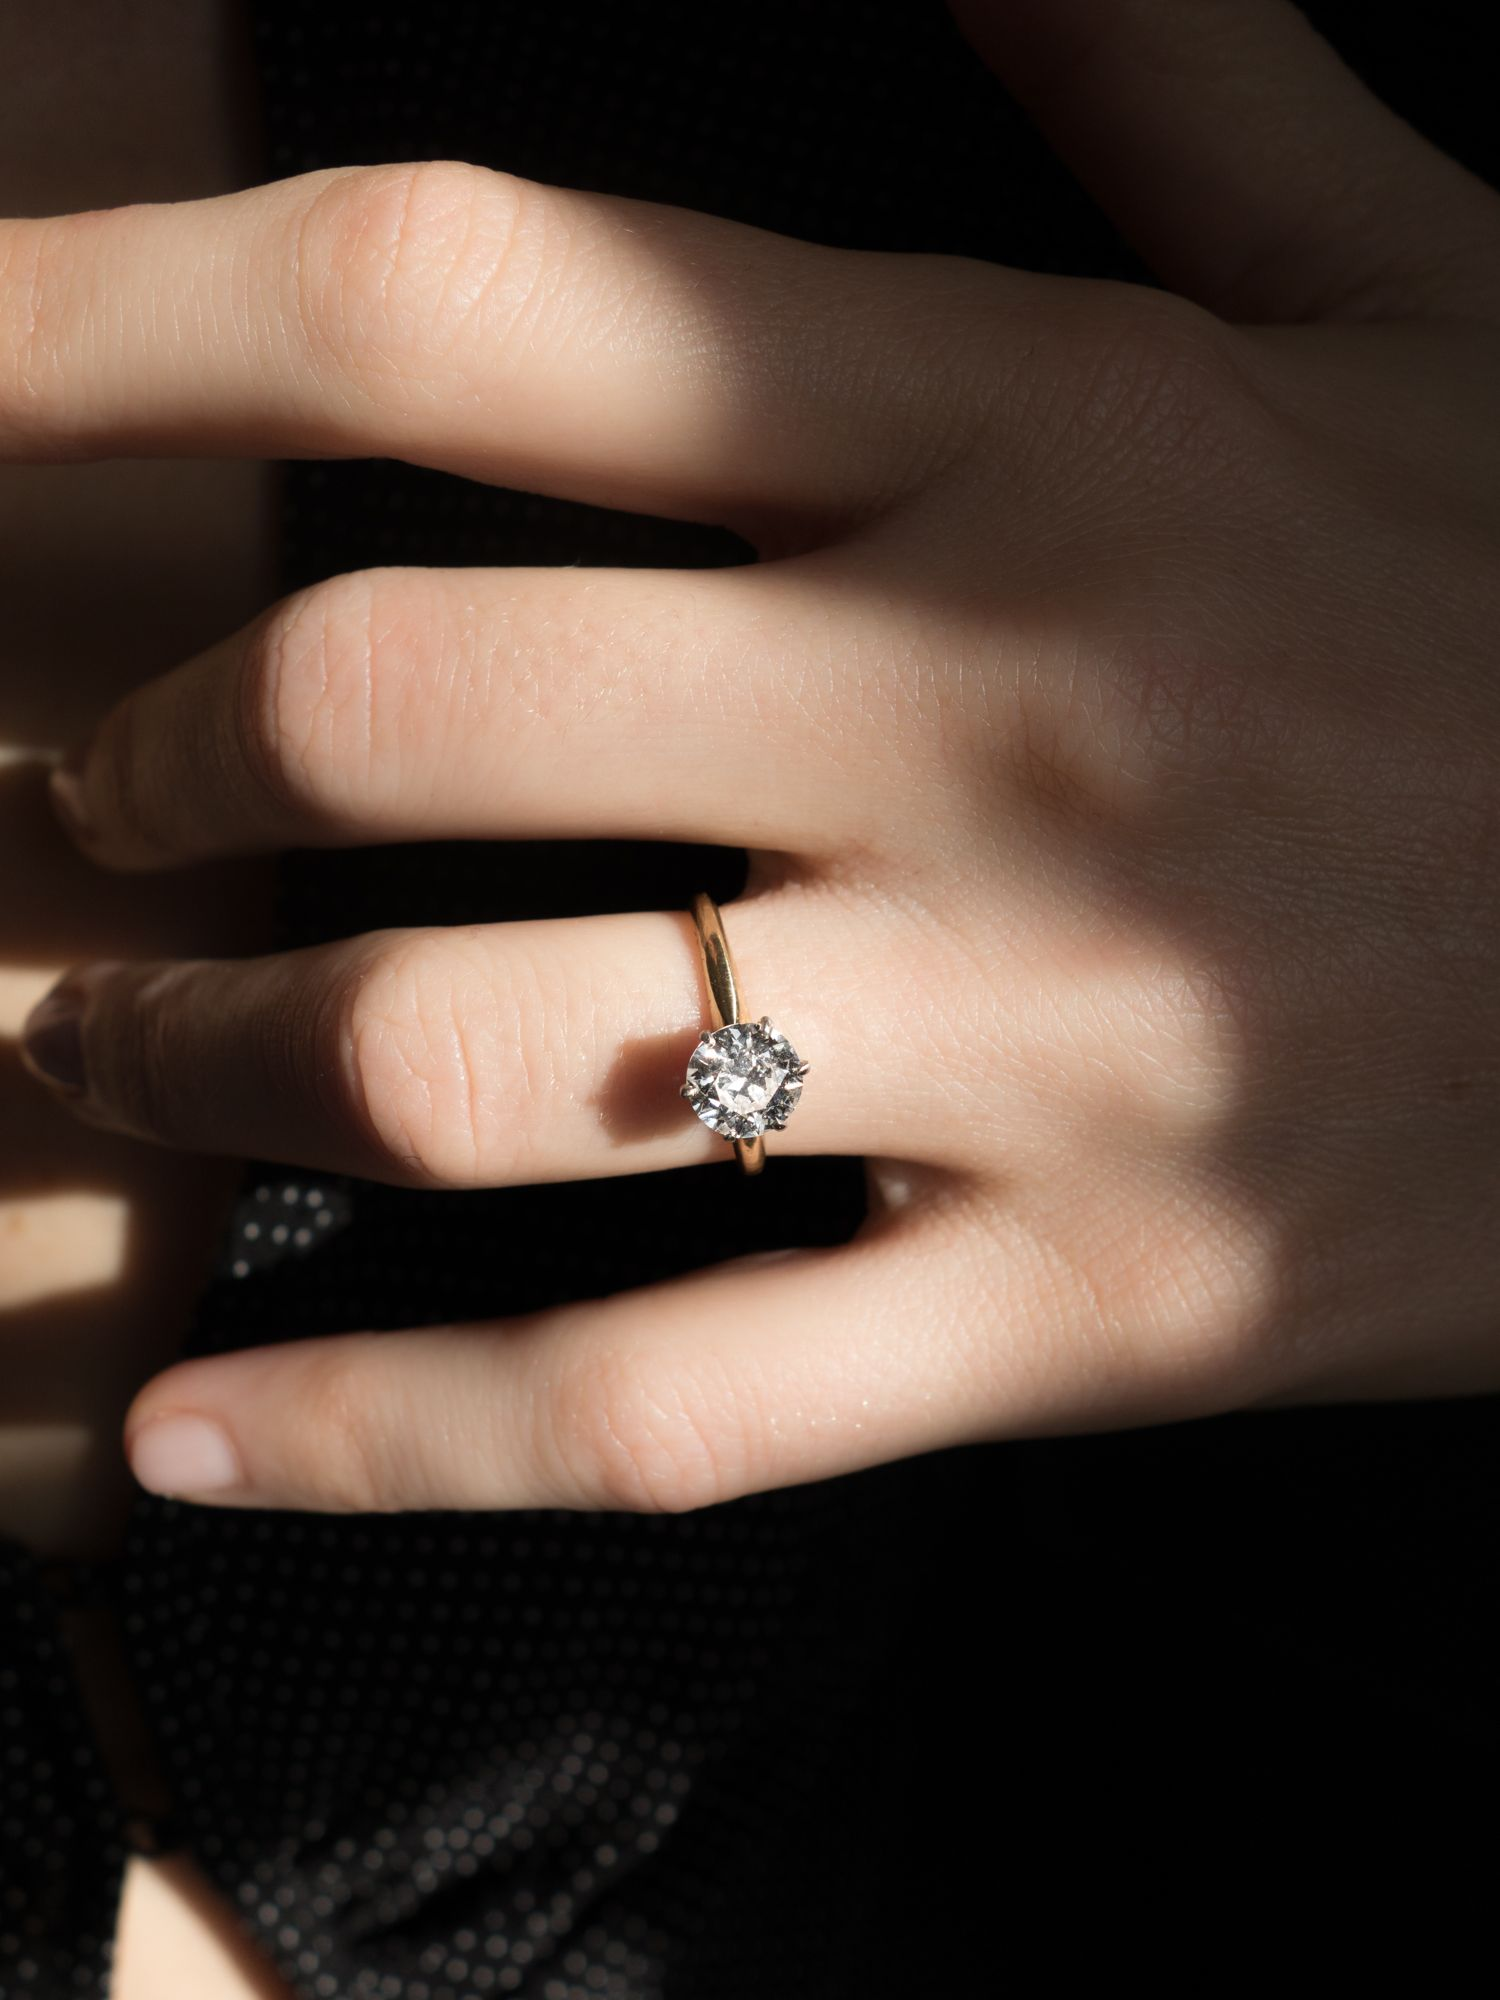 6b7364e58 Vintage 1930's Tiffany & Co. Engagement Ring...Look no further, you found  THE ONE.